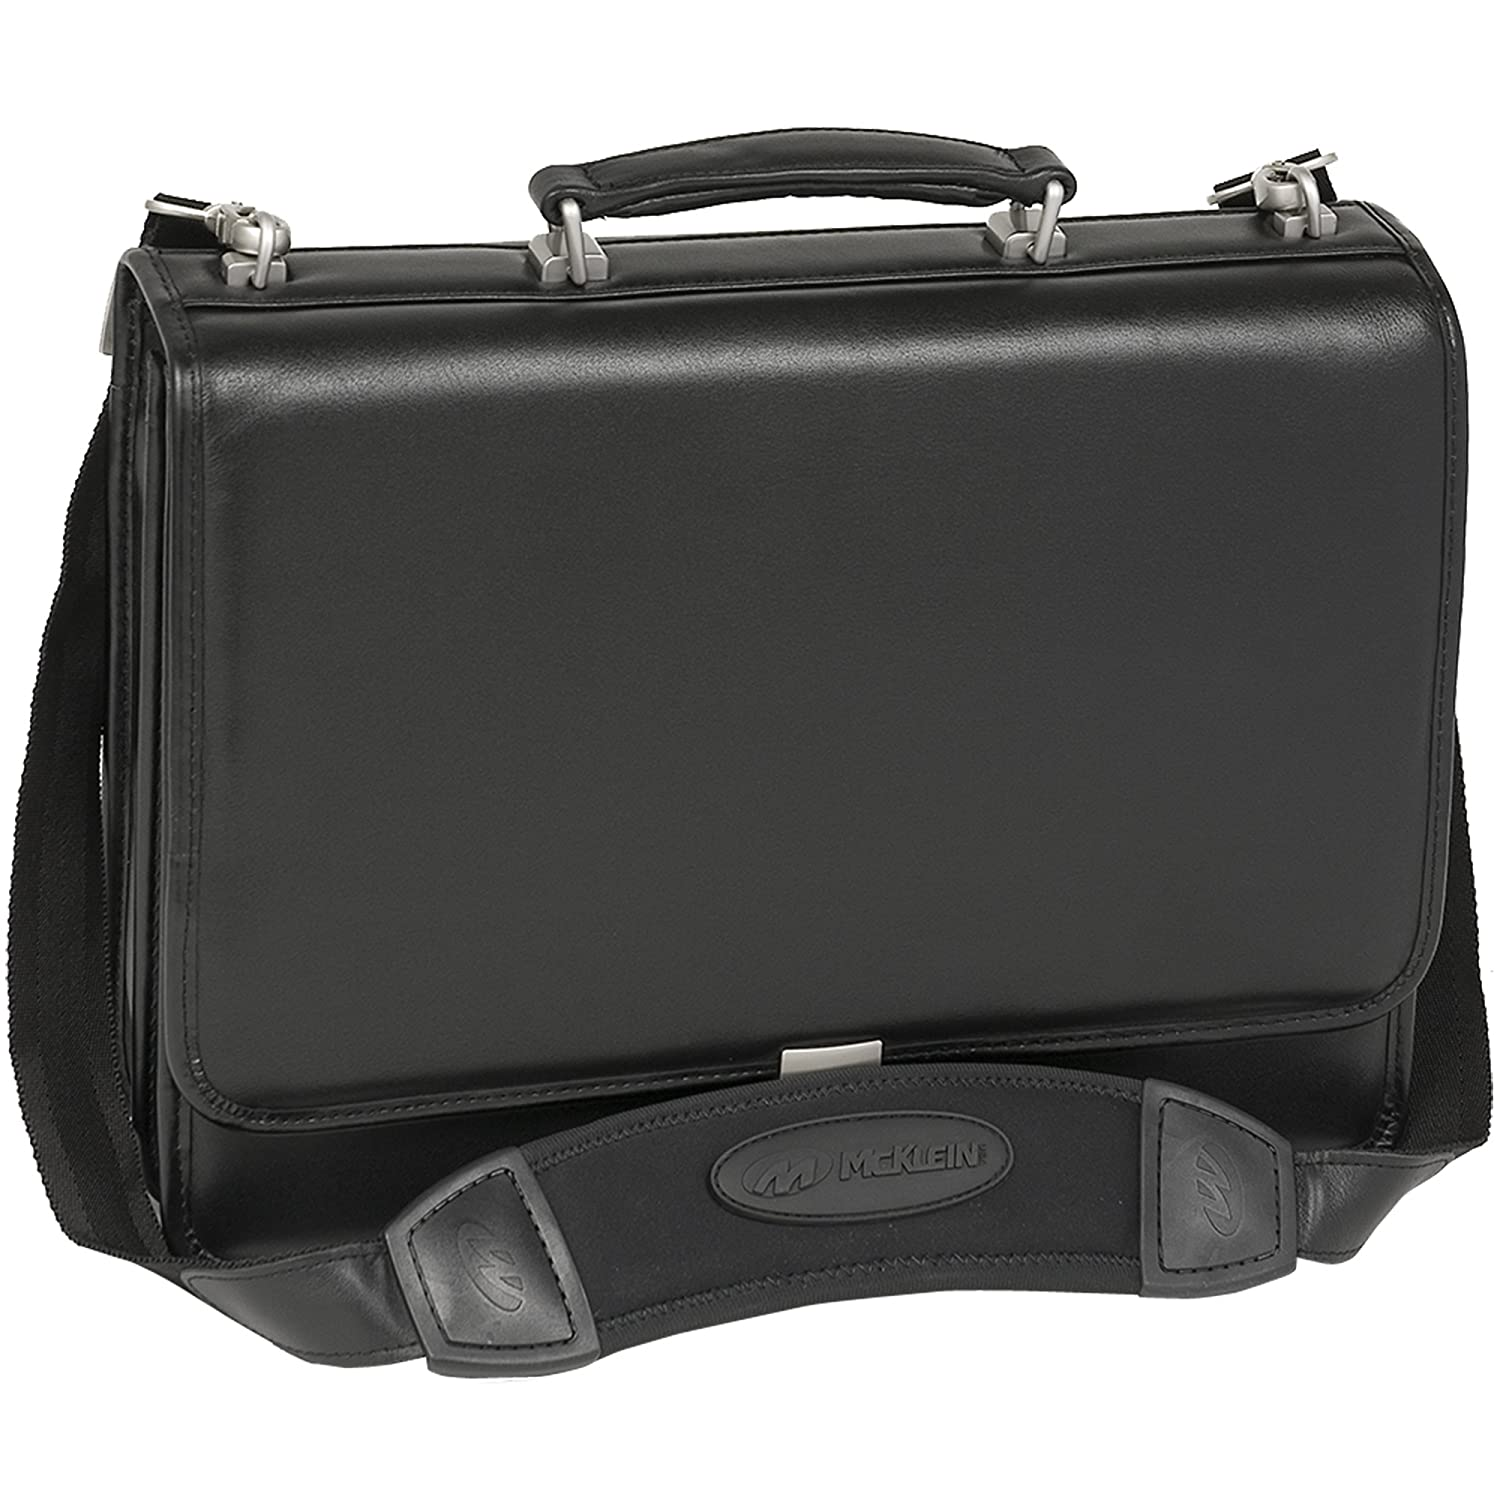 McKlein USA River North Leather 15 Laptop Case I Series Full Grain Cashmere Napa Leather 15 Leather Triple Compartment Laptop Briefcase Black 43555 120084-1995637